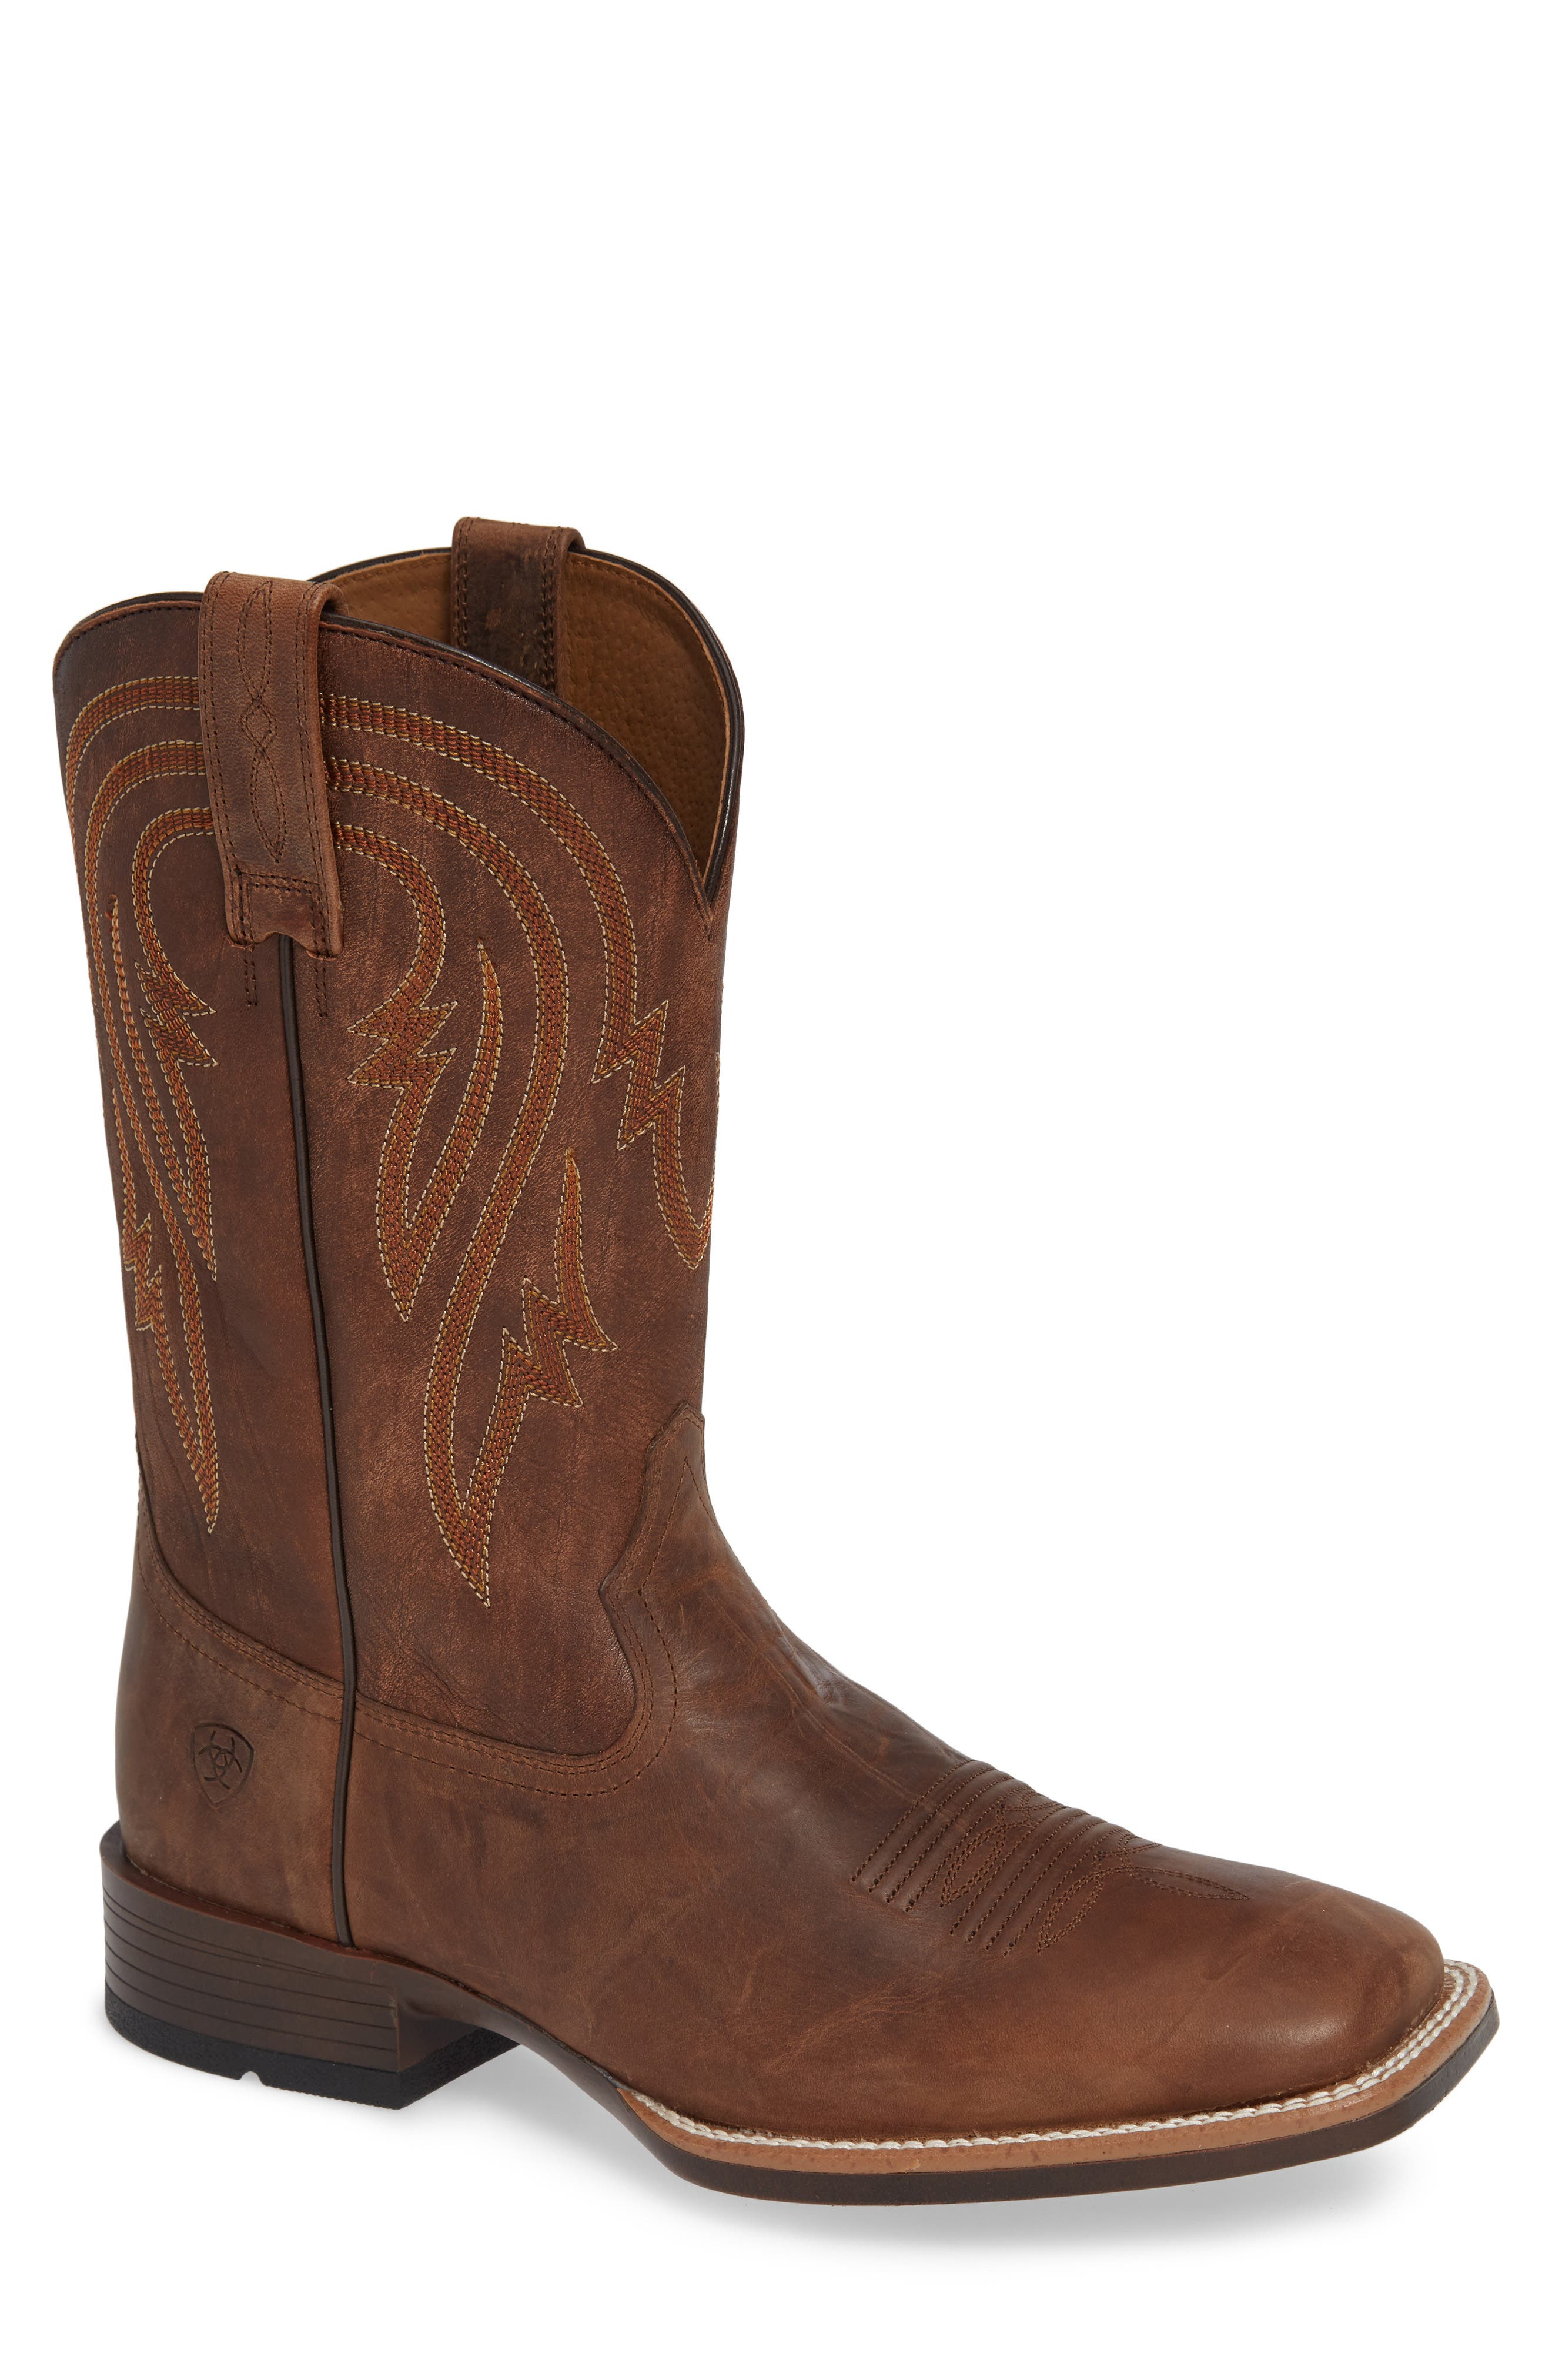 ARIAT Plano Cowboy Boot, Main, color, TANNIN/ TACK ROM LEATHER